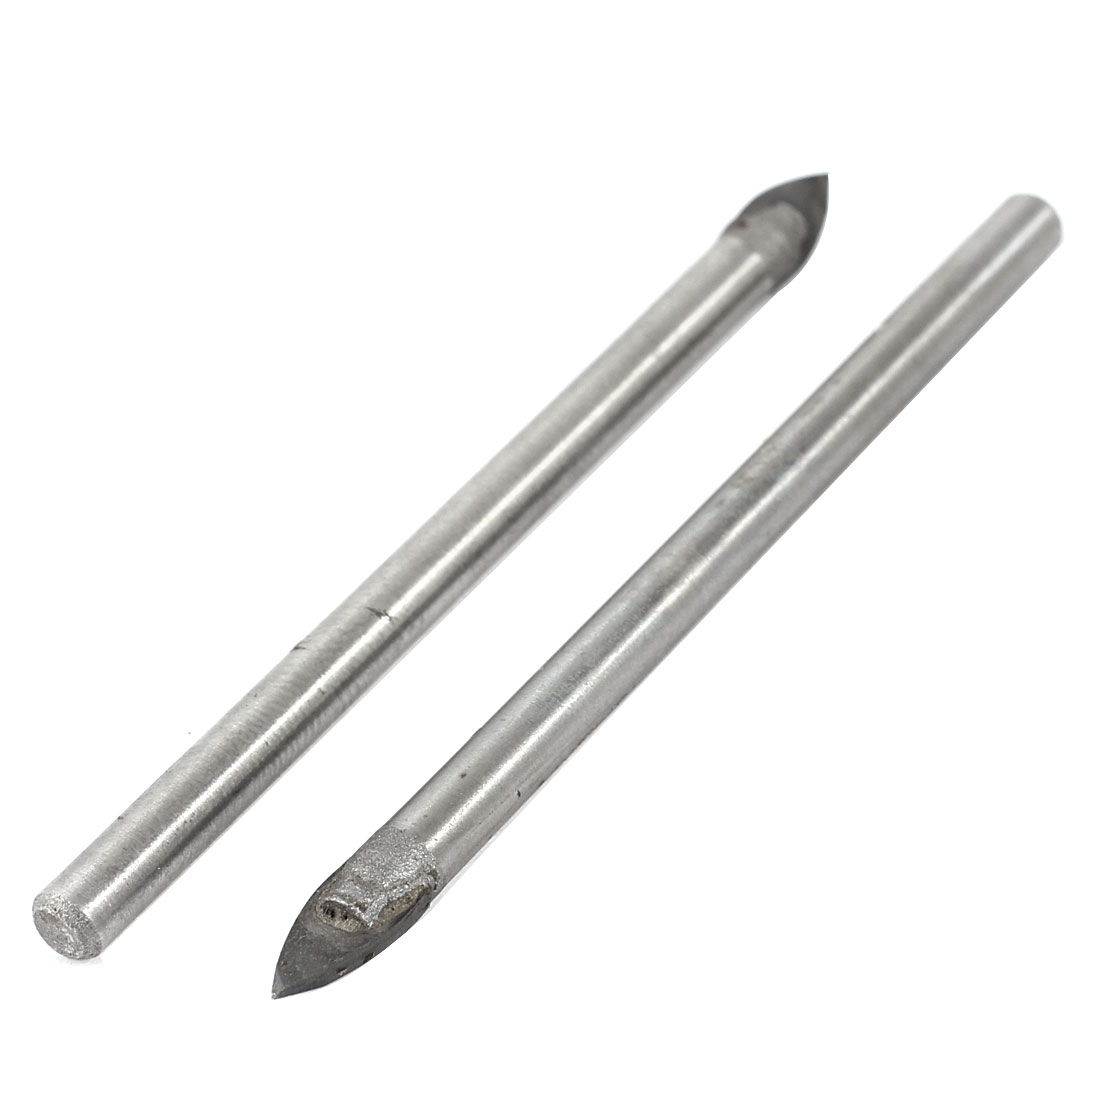 2pcs Metal 5mm Triangle Tip Tile Drill Bit Silver Tone 2.8""